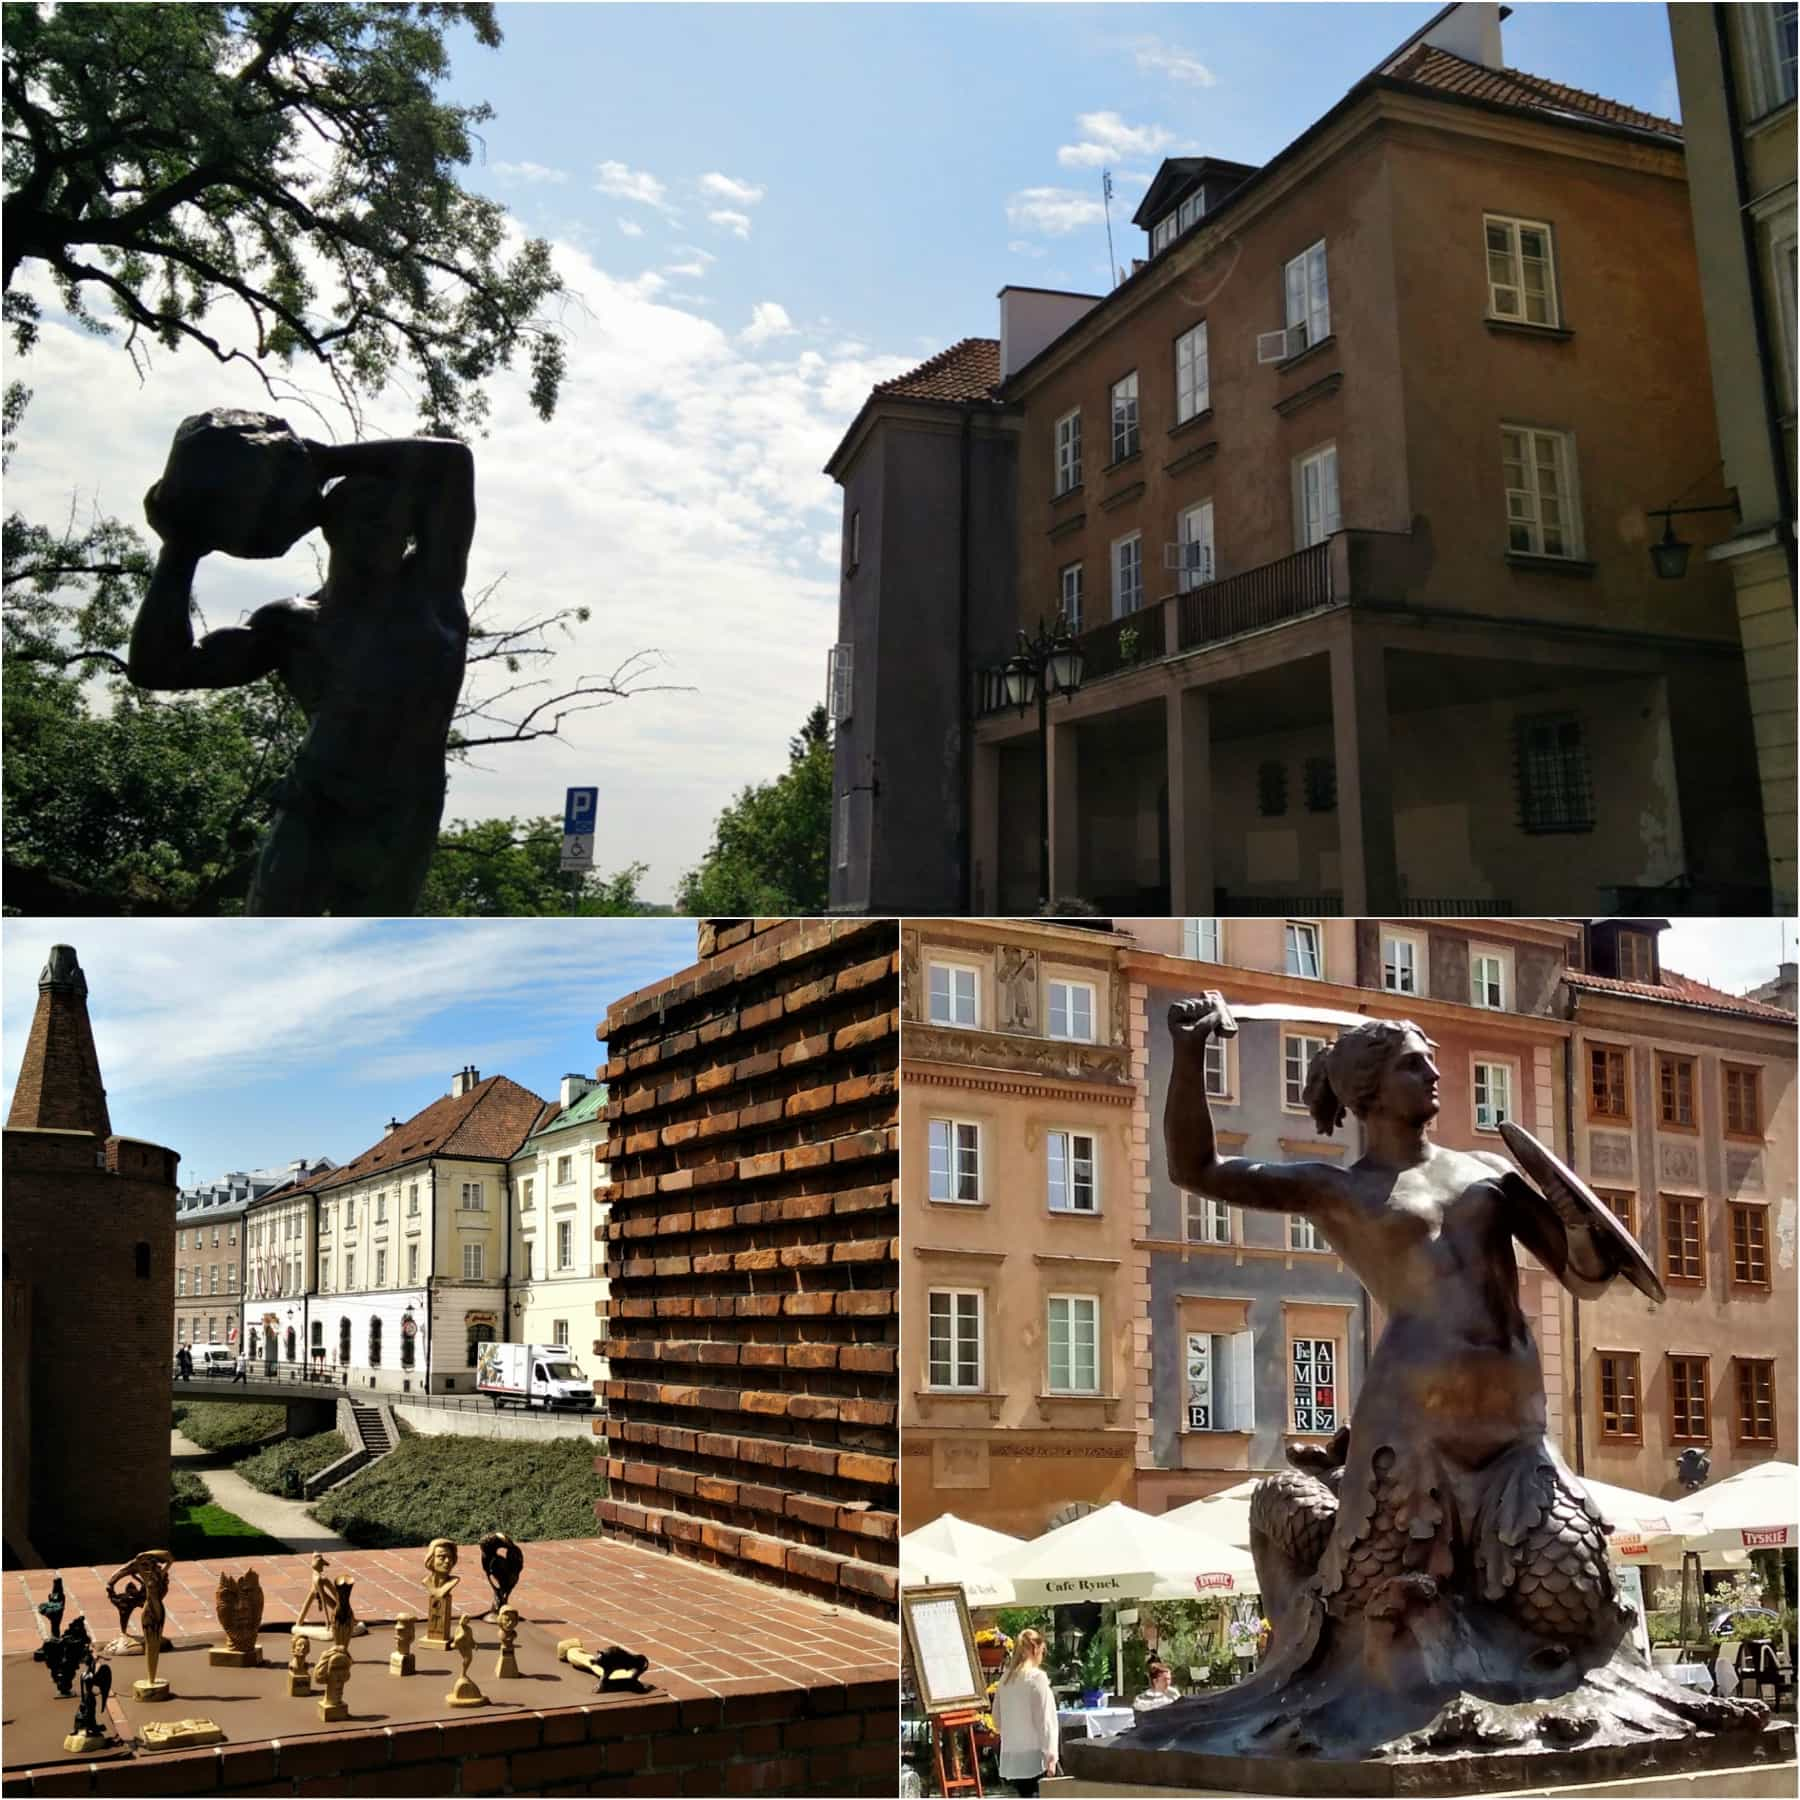 Sculptures in Warsaw's old town